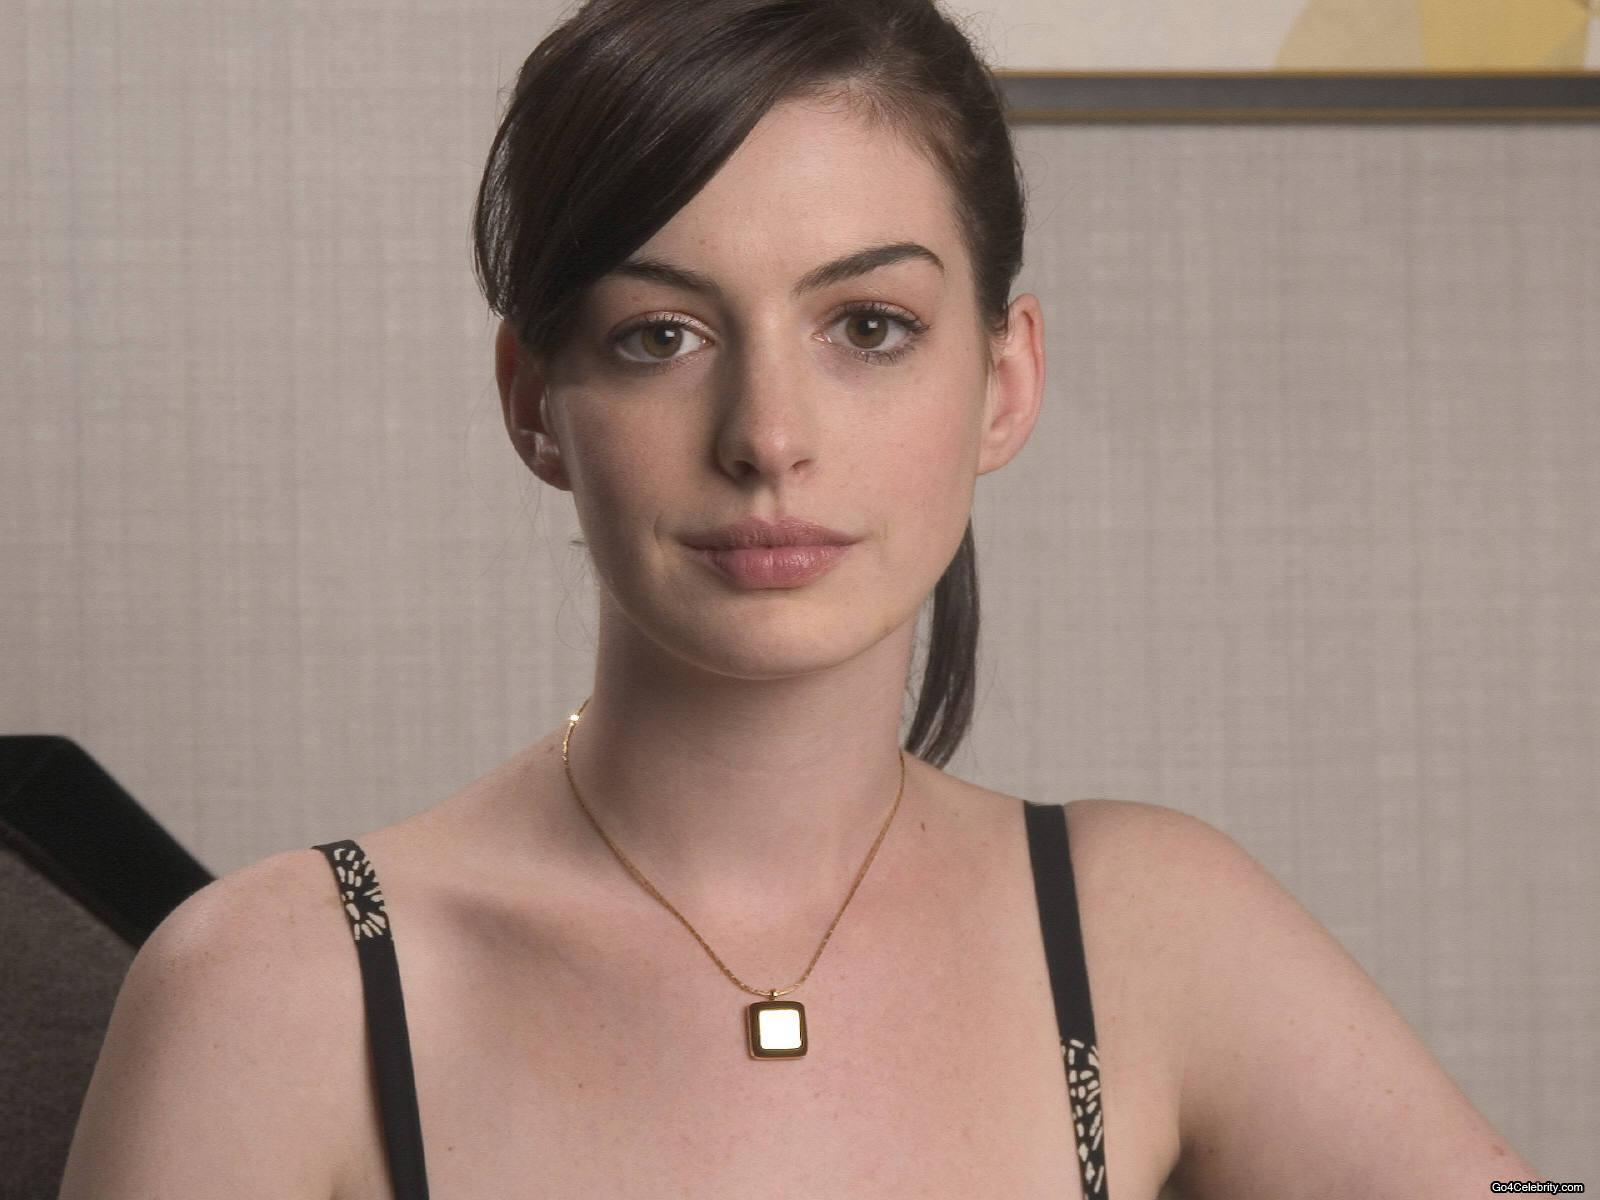 http://images2.fanpop.com/images/photos/6800000/Anne-anne-hathaway-6819474-1600-1200.jpg